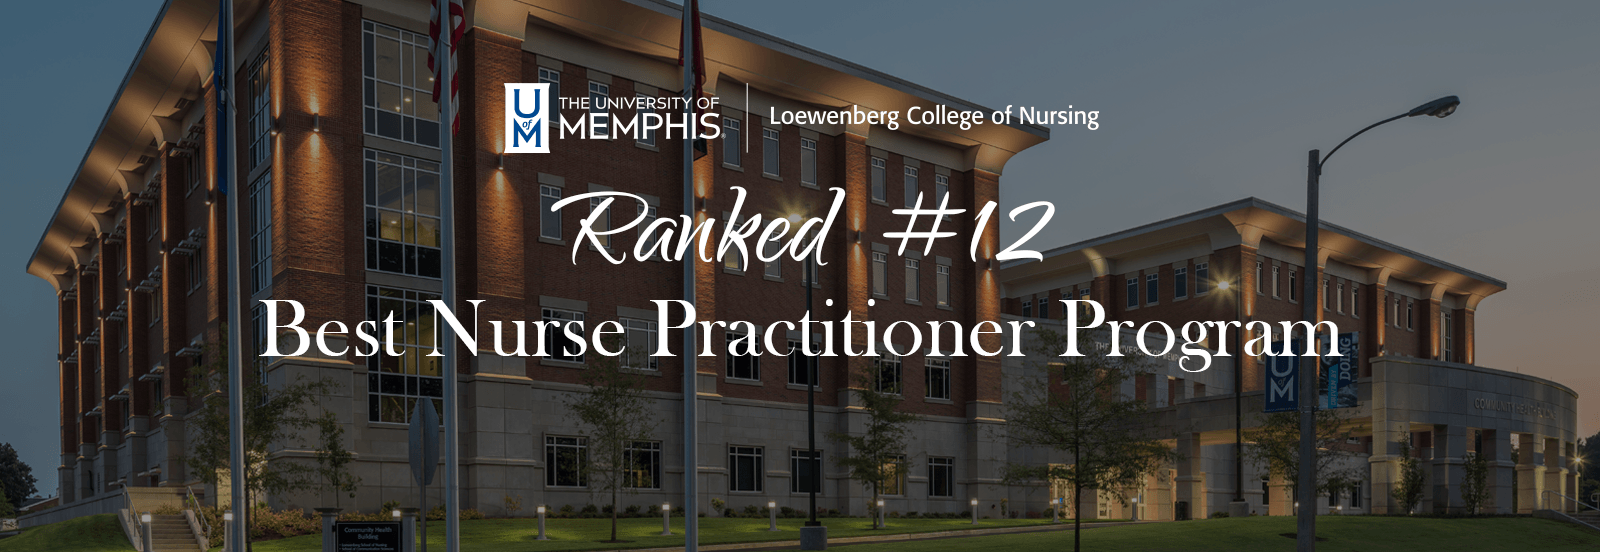 Picture of community health building with nursing logo, text reading ranked #12 best nurse practitioner program